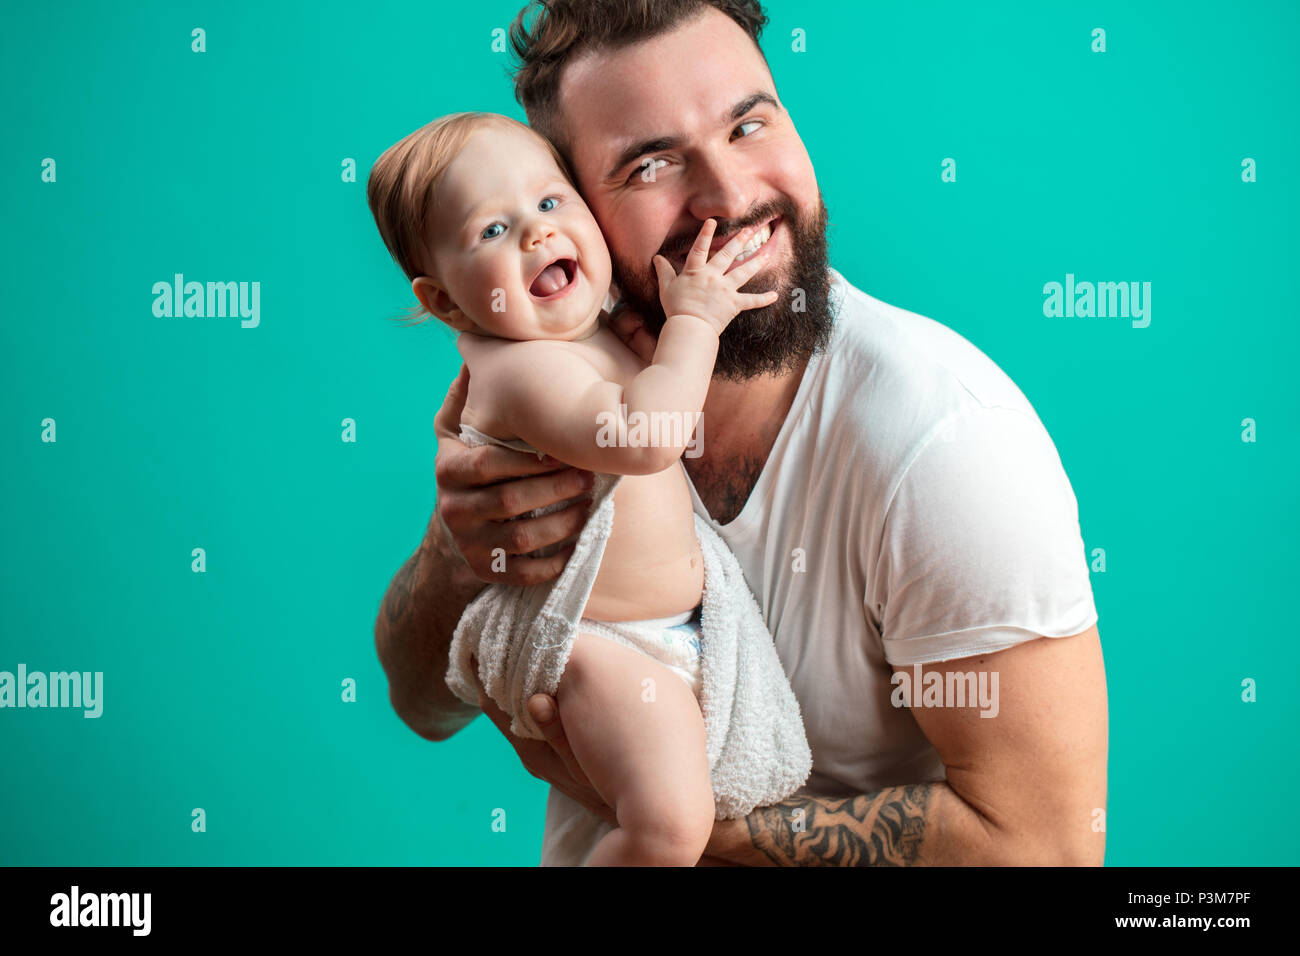 Playful father carrying his smiling infant child on neck over blue background - Stock Image